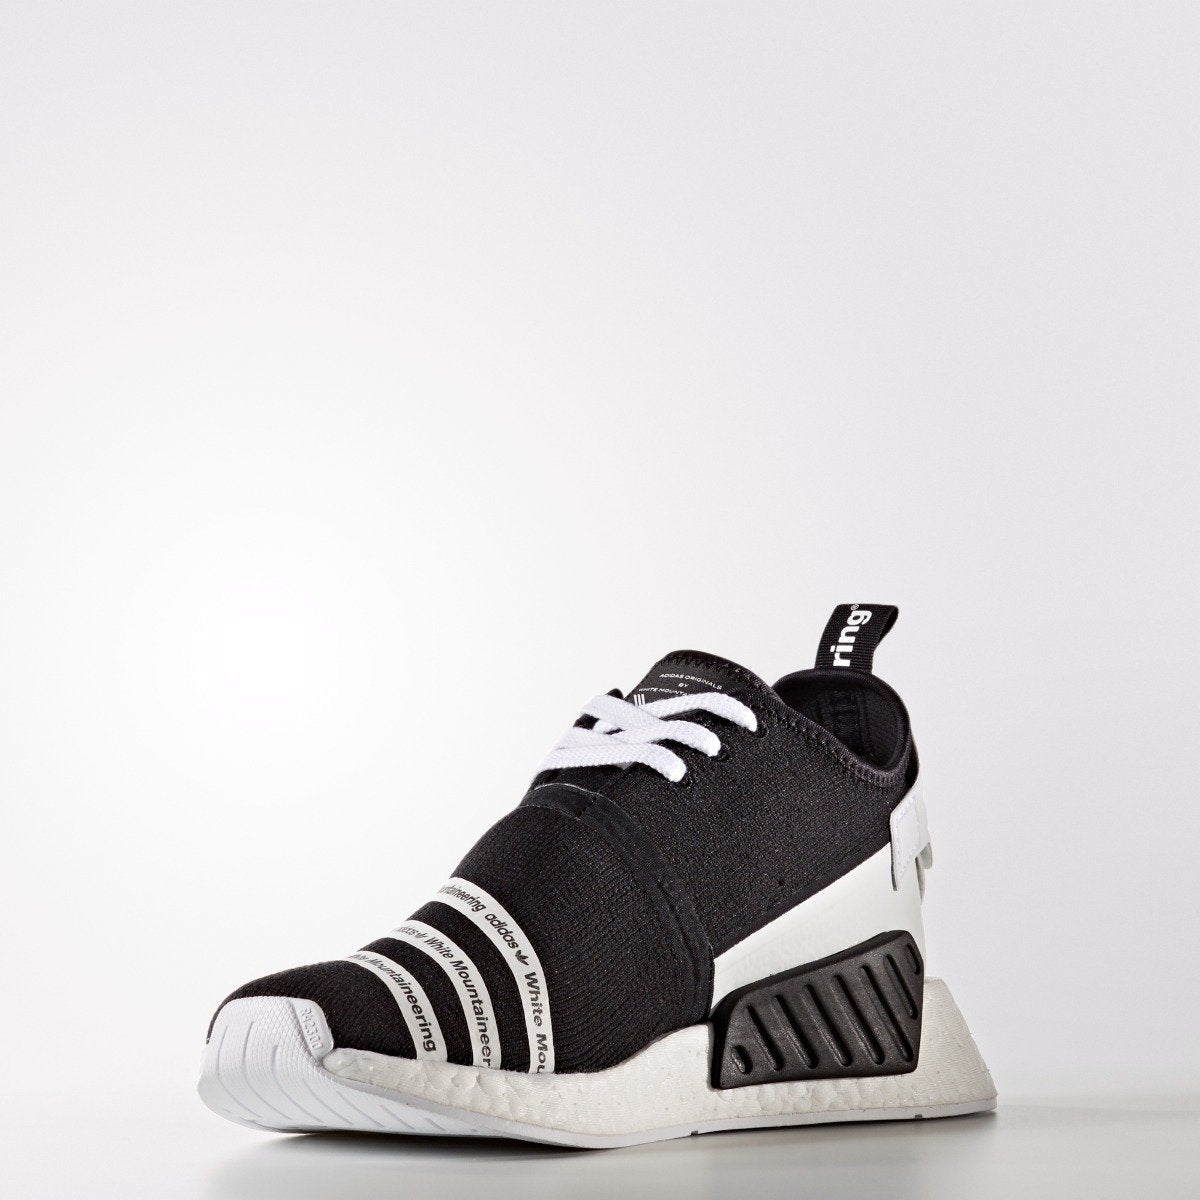 sports shoes 09478 555d8 Men's adidas Originals White Mountaineering NMD_R2 Primeknit ...